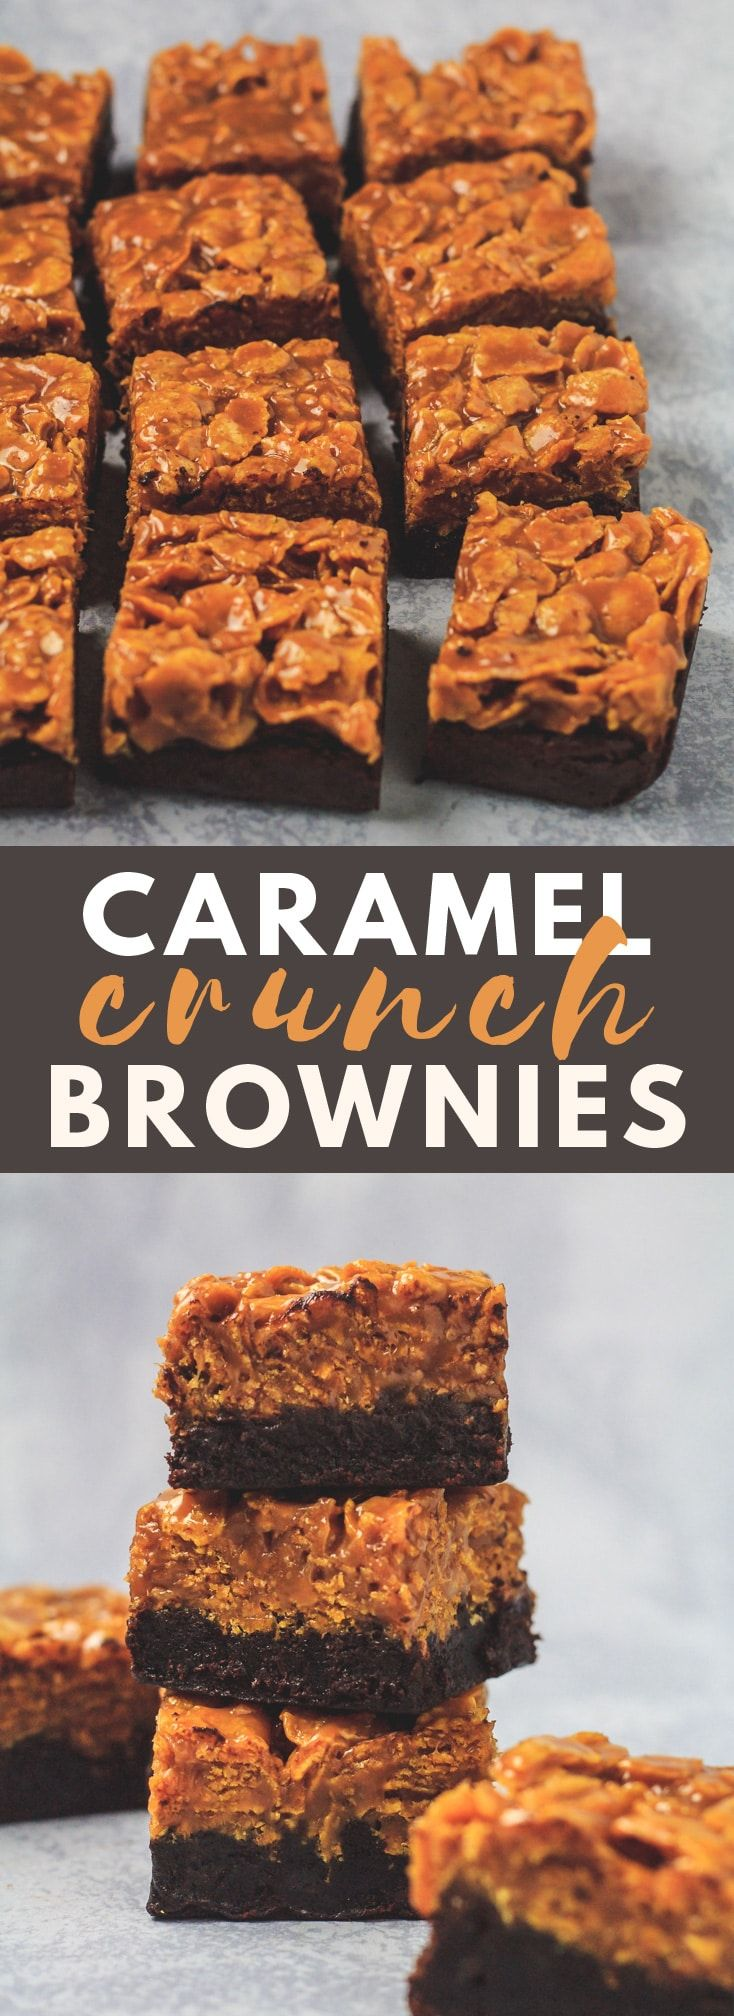 Caramel Crunch Brownies - Deliciously thick and fudgy brownies that are topped with a generous laye